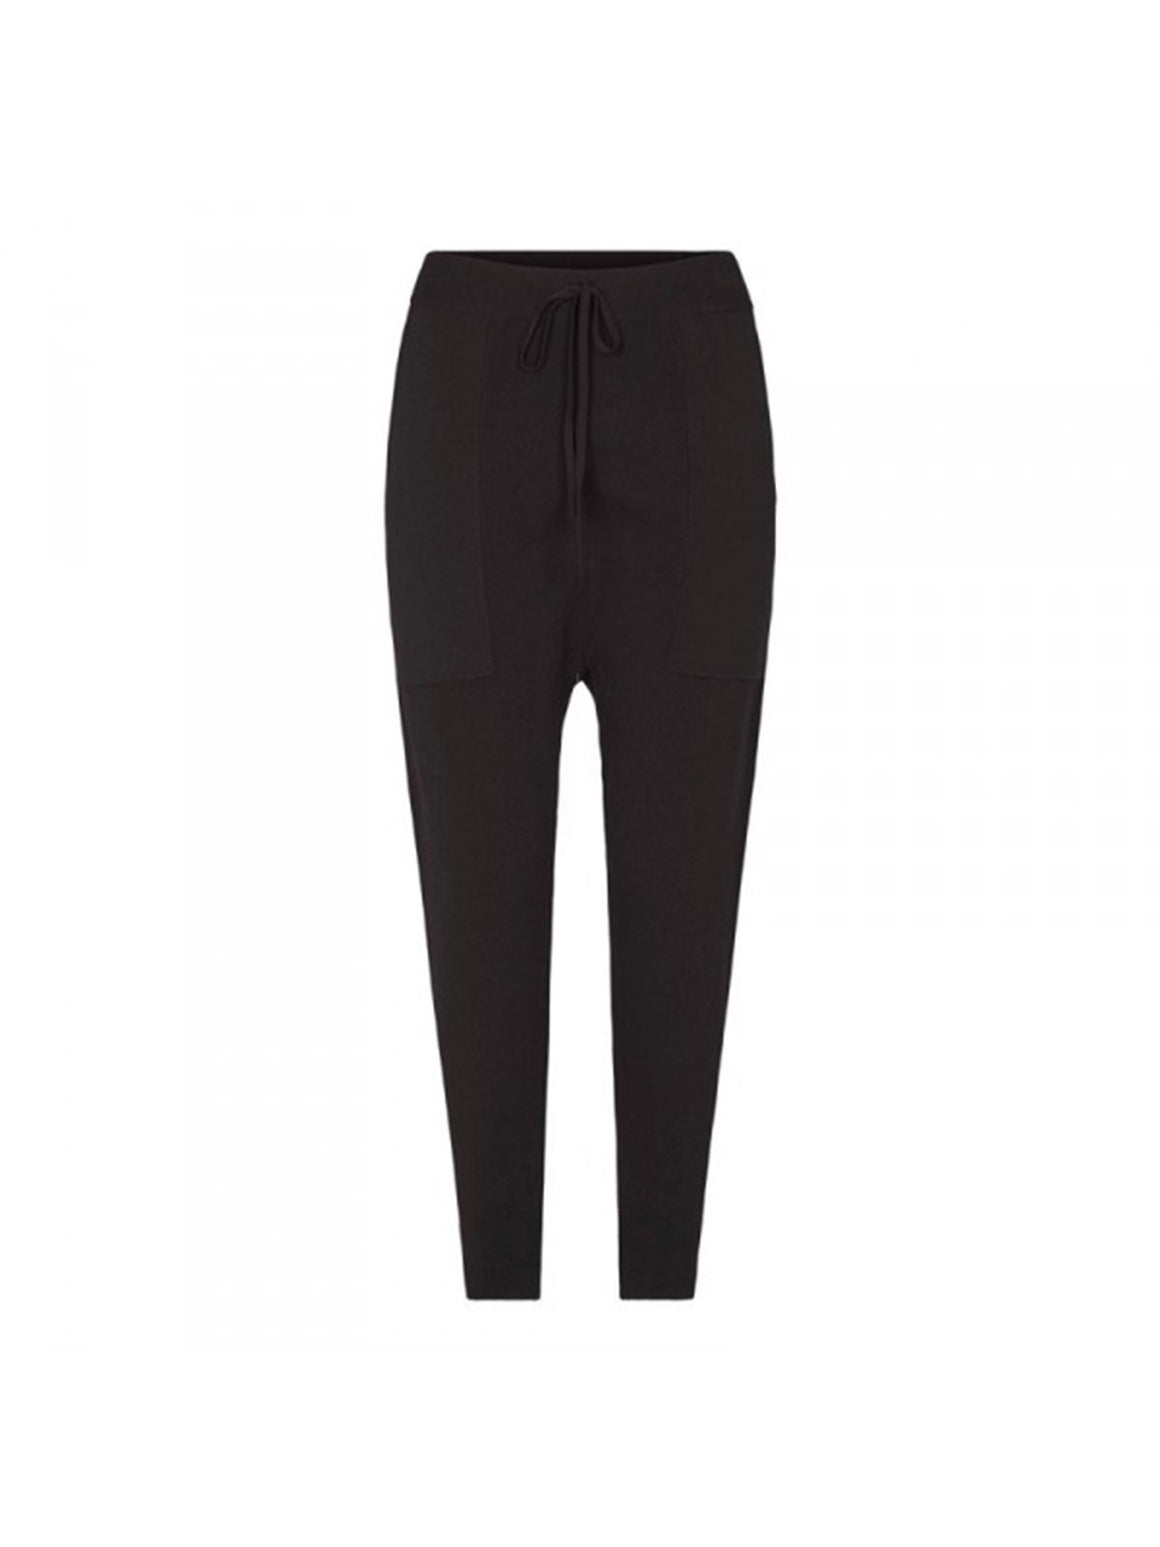 Camilla and Marc Charlton Viscose Pant - Black | Perlu